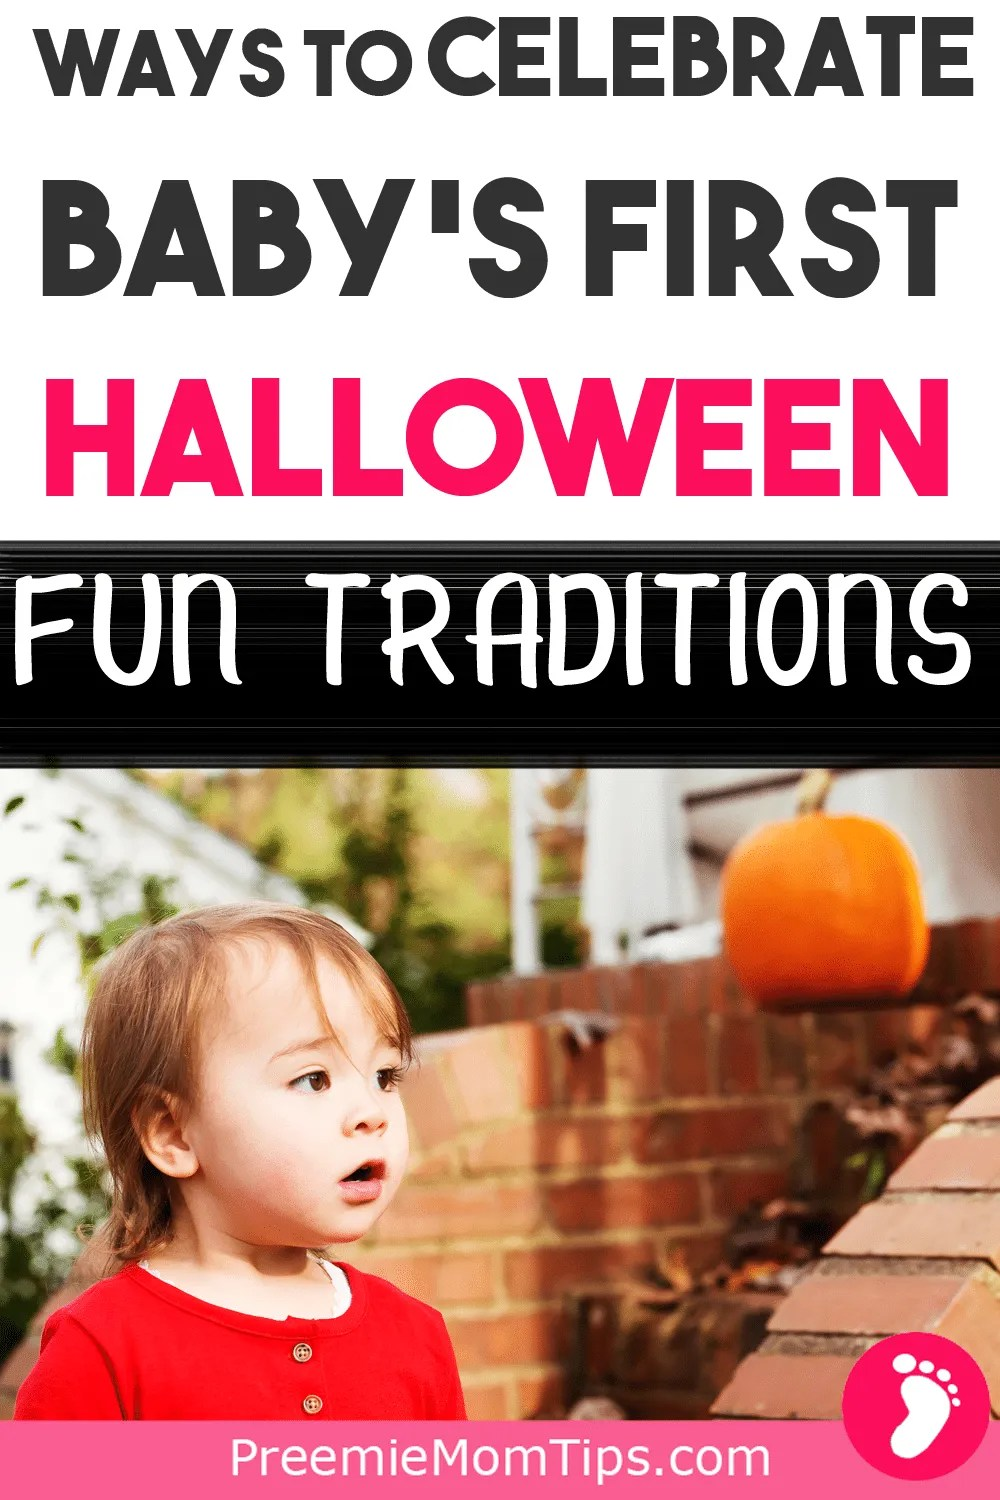 My baby's first Halloween was beyond special thanks to our Halloween family traditions. If you don't know how to celebrate Halloween with your baby check out my top picks for family Halloween traditions